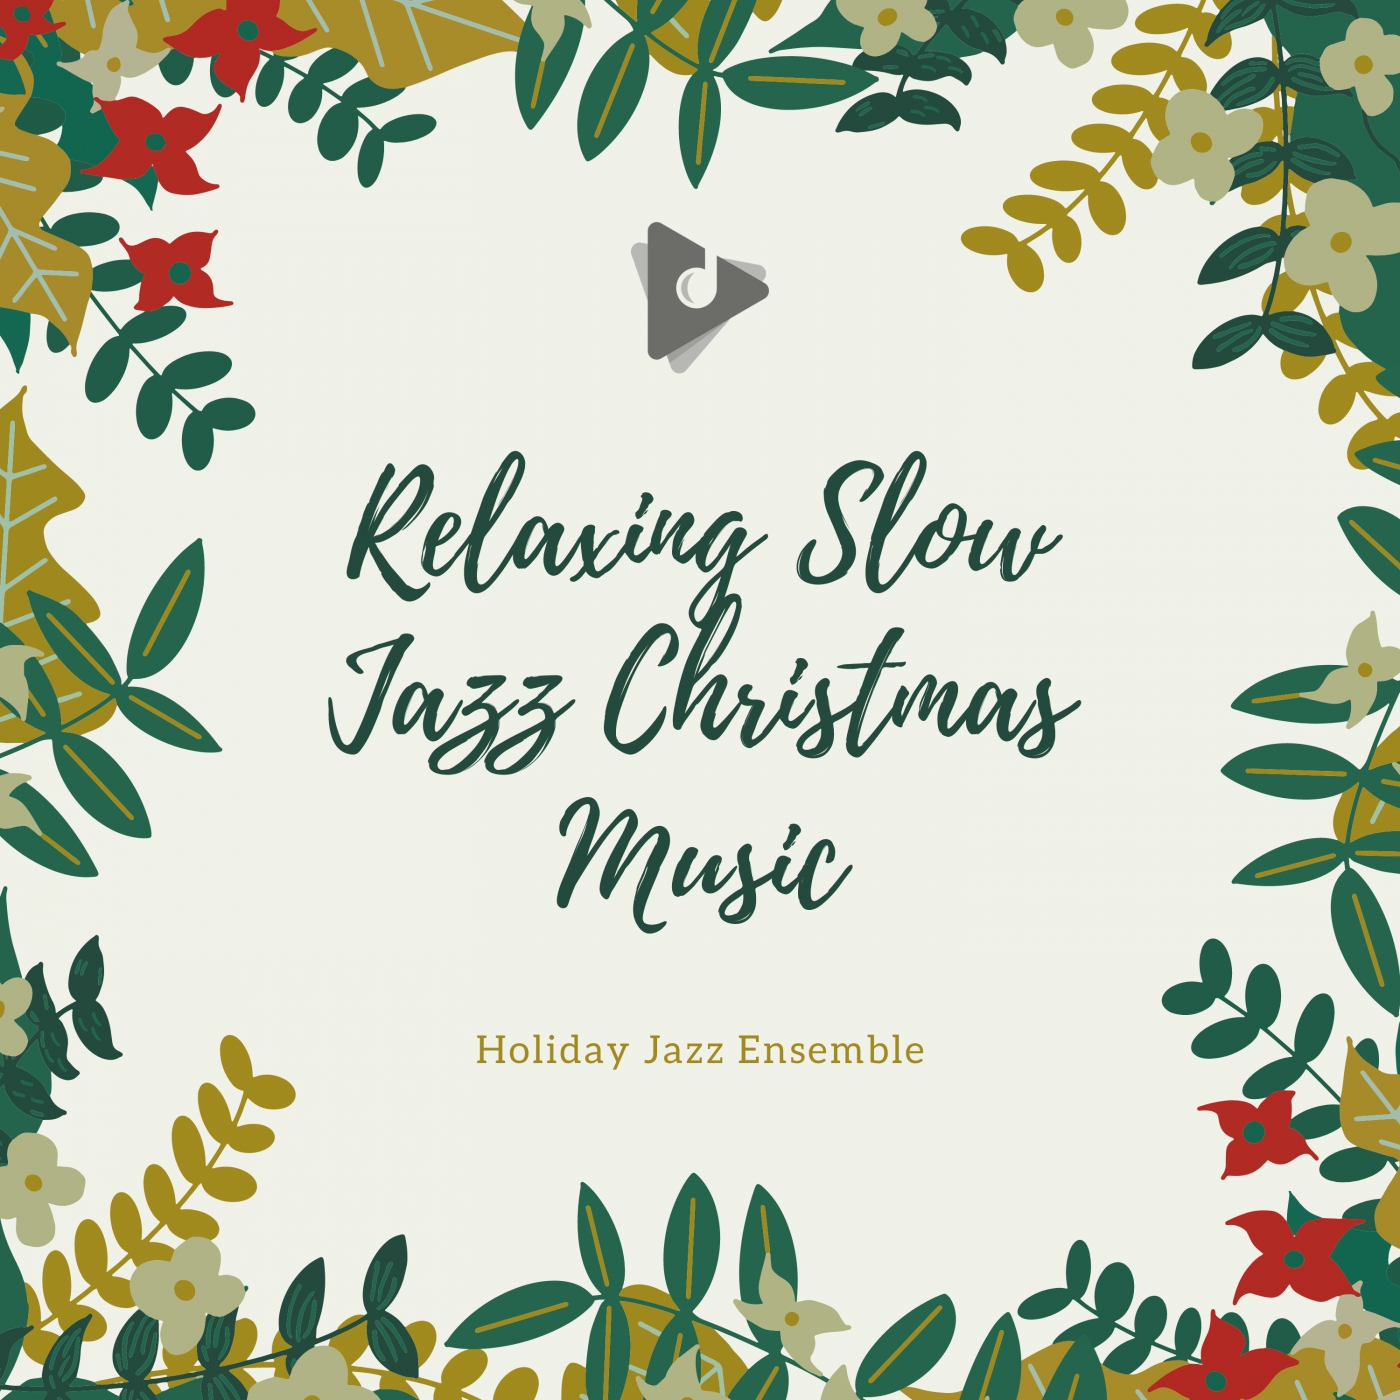 Relaxing Slow Jazz Christmas Music